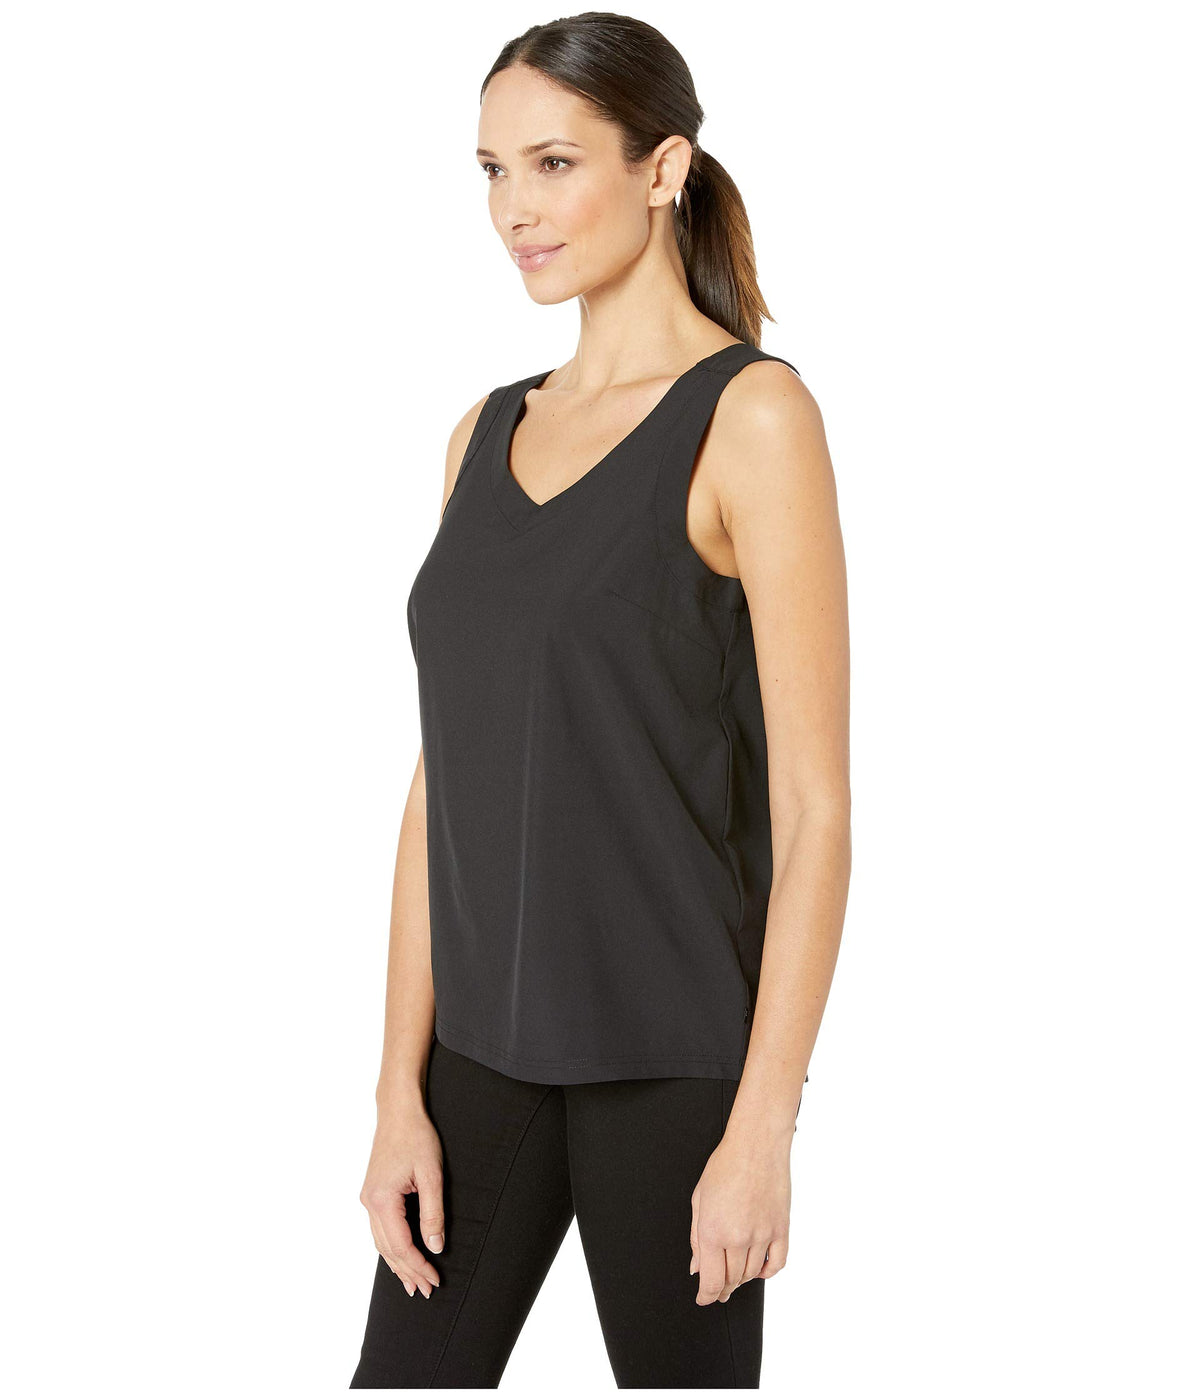 Inx Sleeveless Top